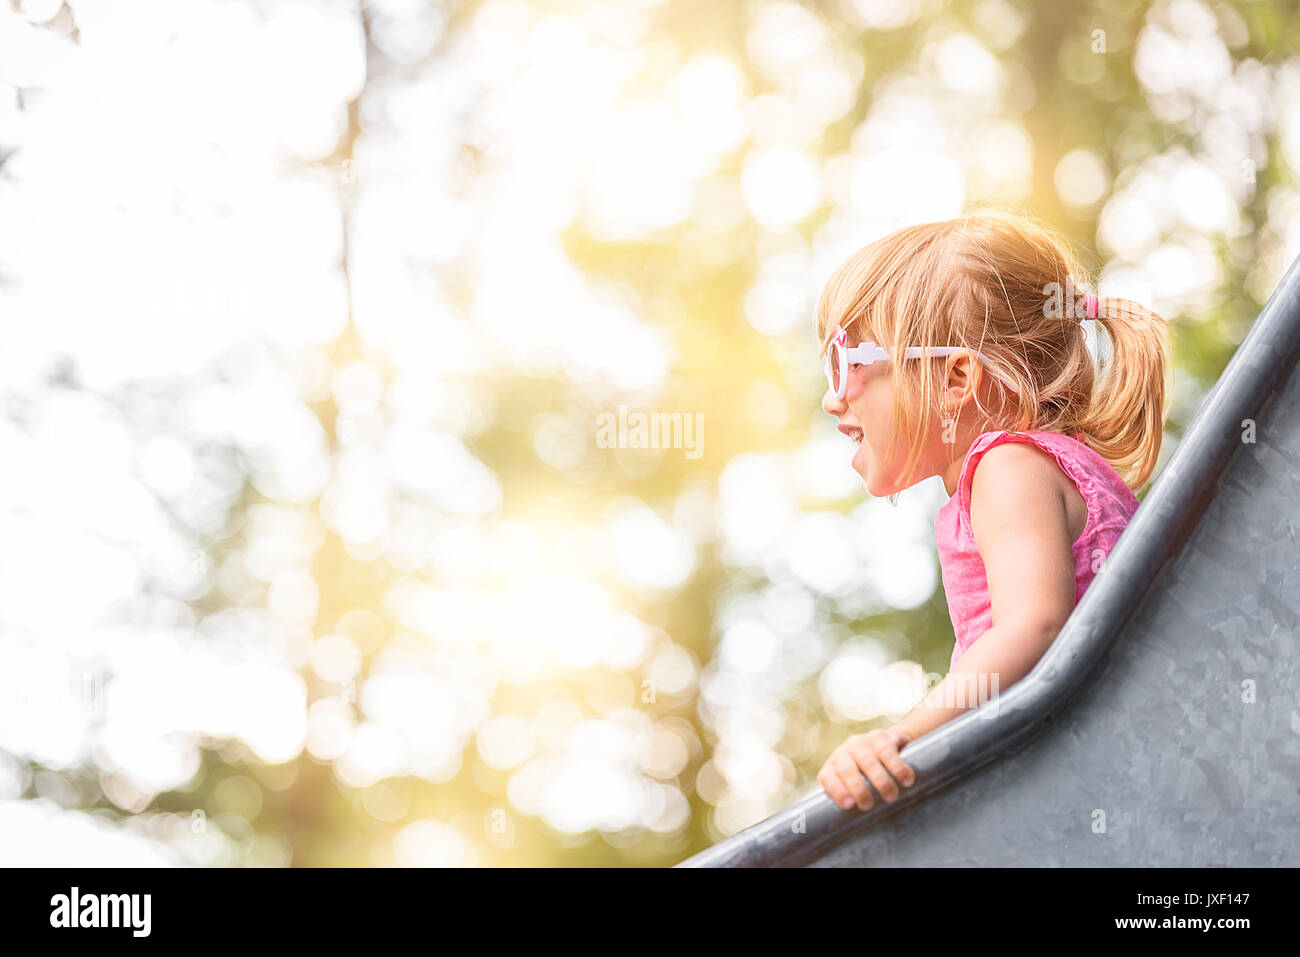 Close-up image with a  little girl having fun on a slide from a playground, on a sunny day. Stock Photo